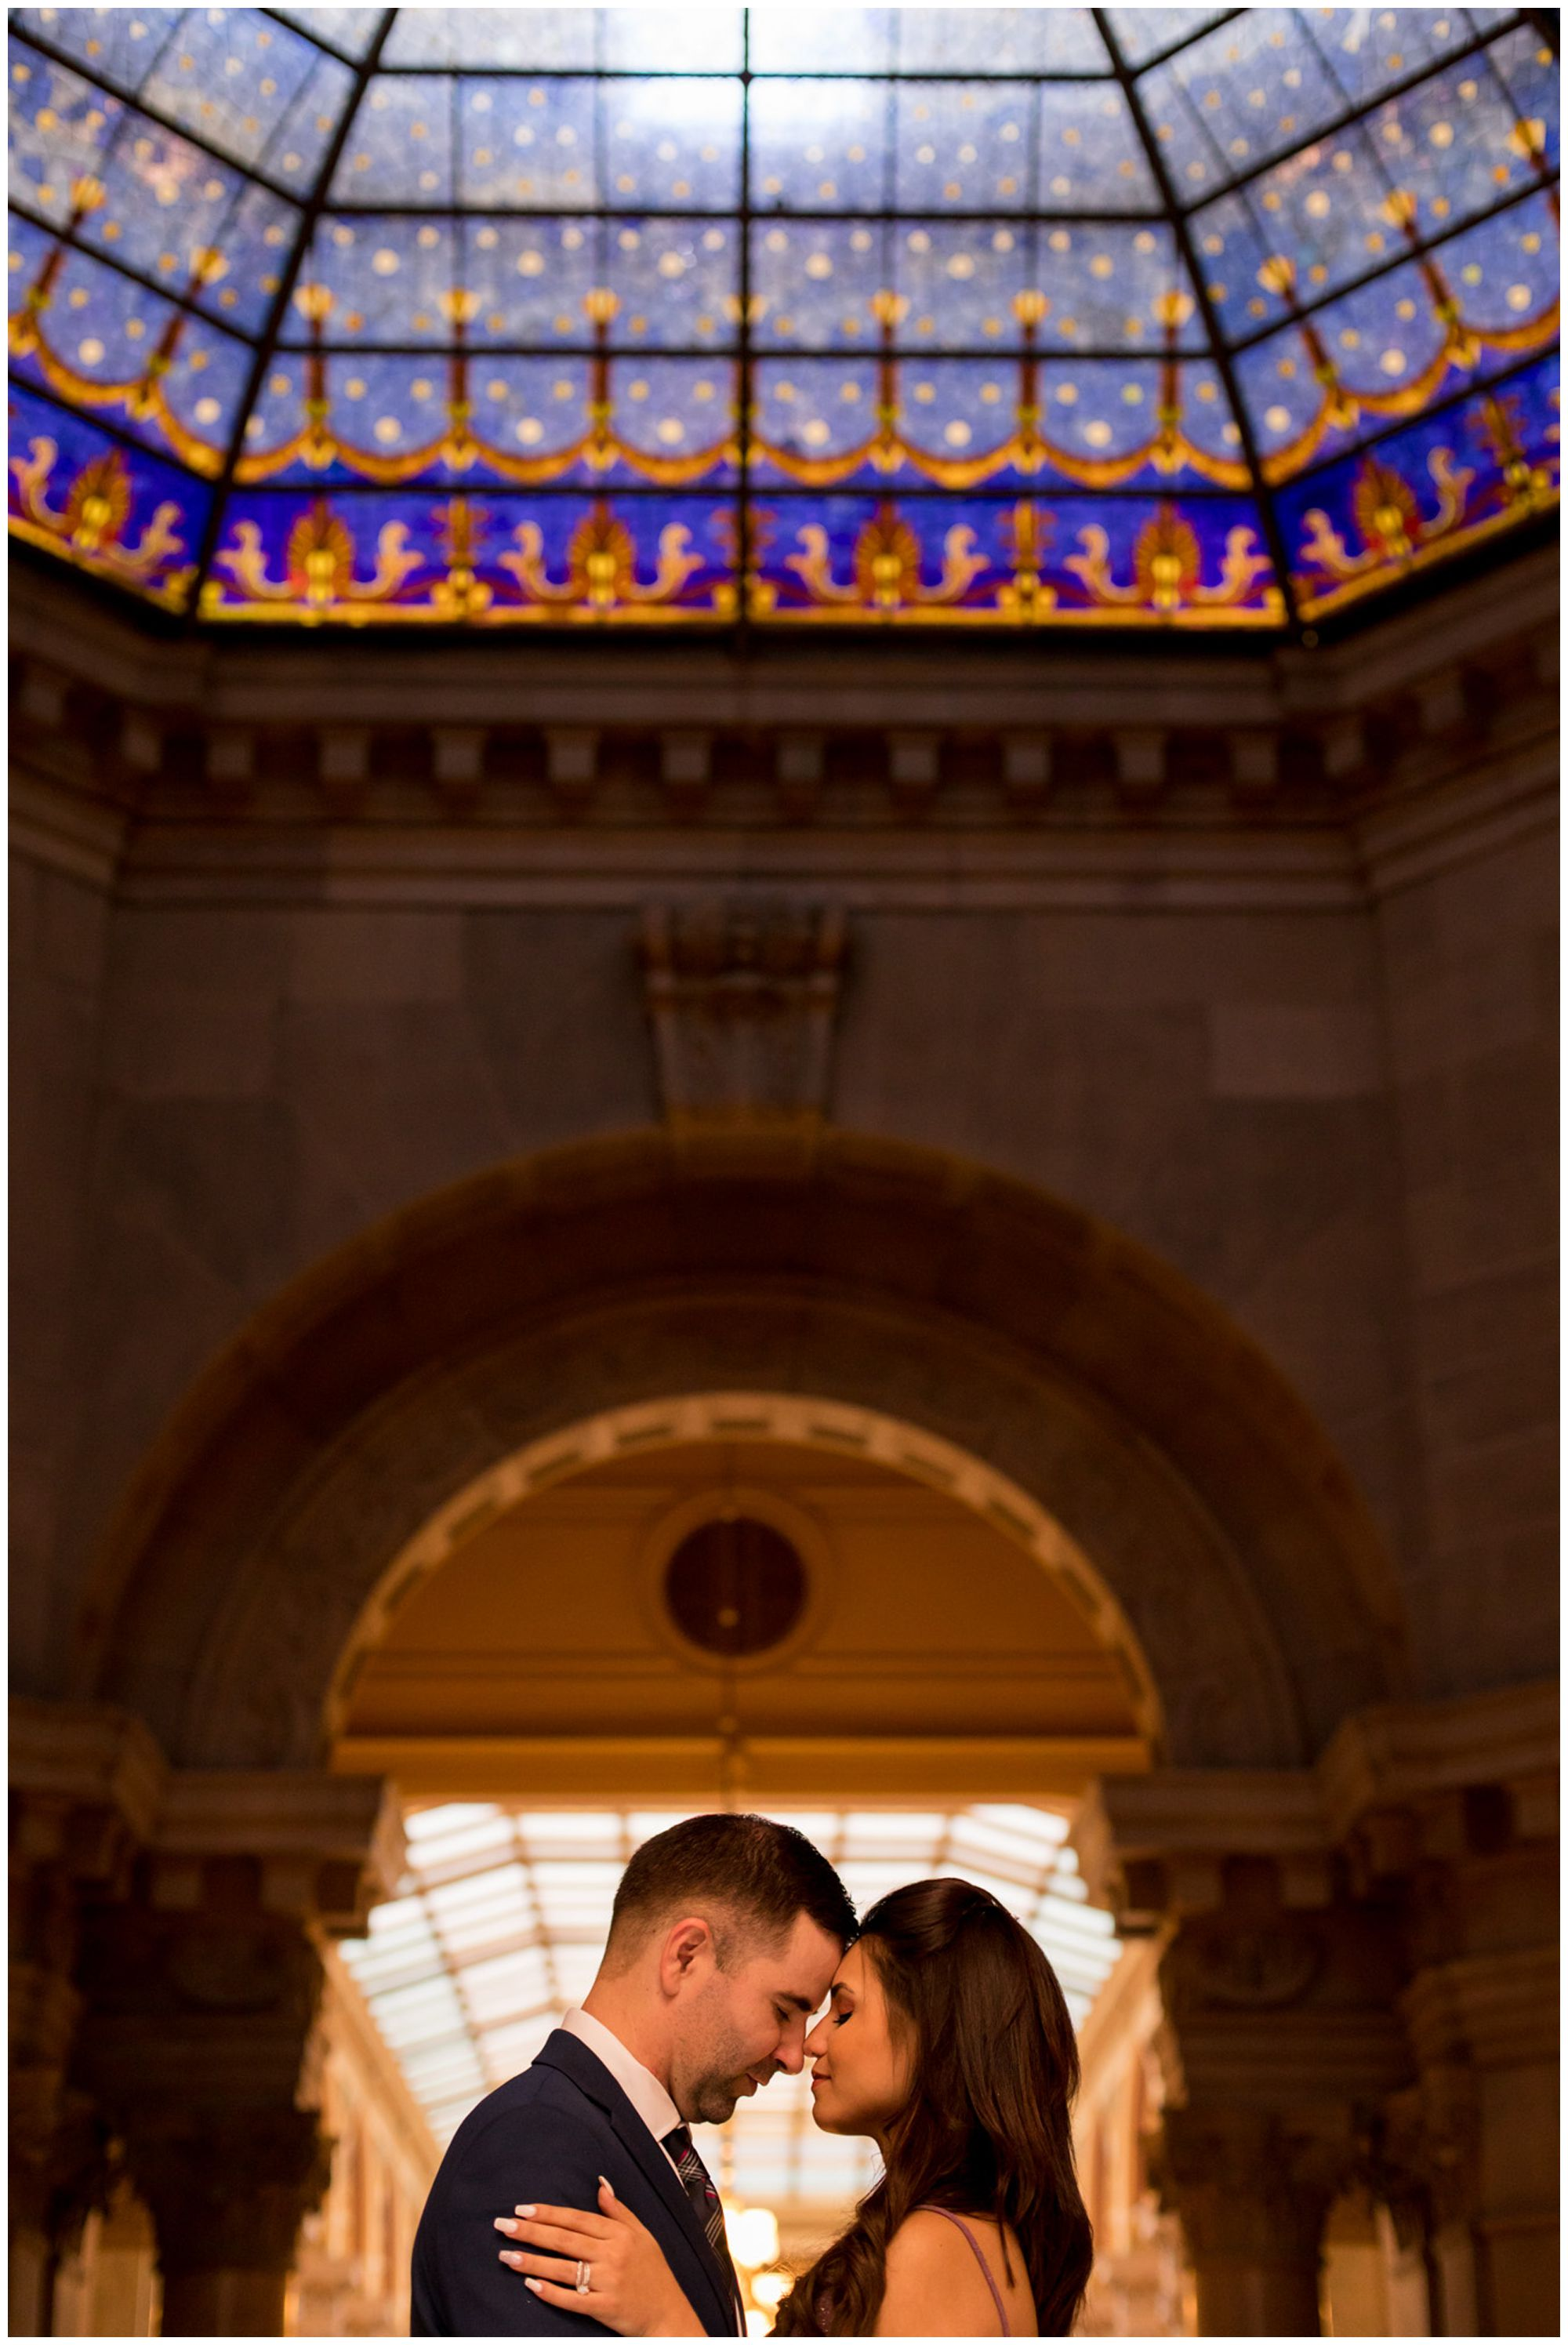 bride and groom during portraits after elopement ceremony in Indiana Statehouse in downtown Indianapolis